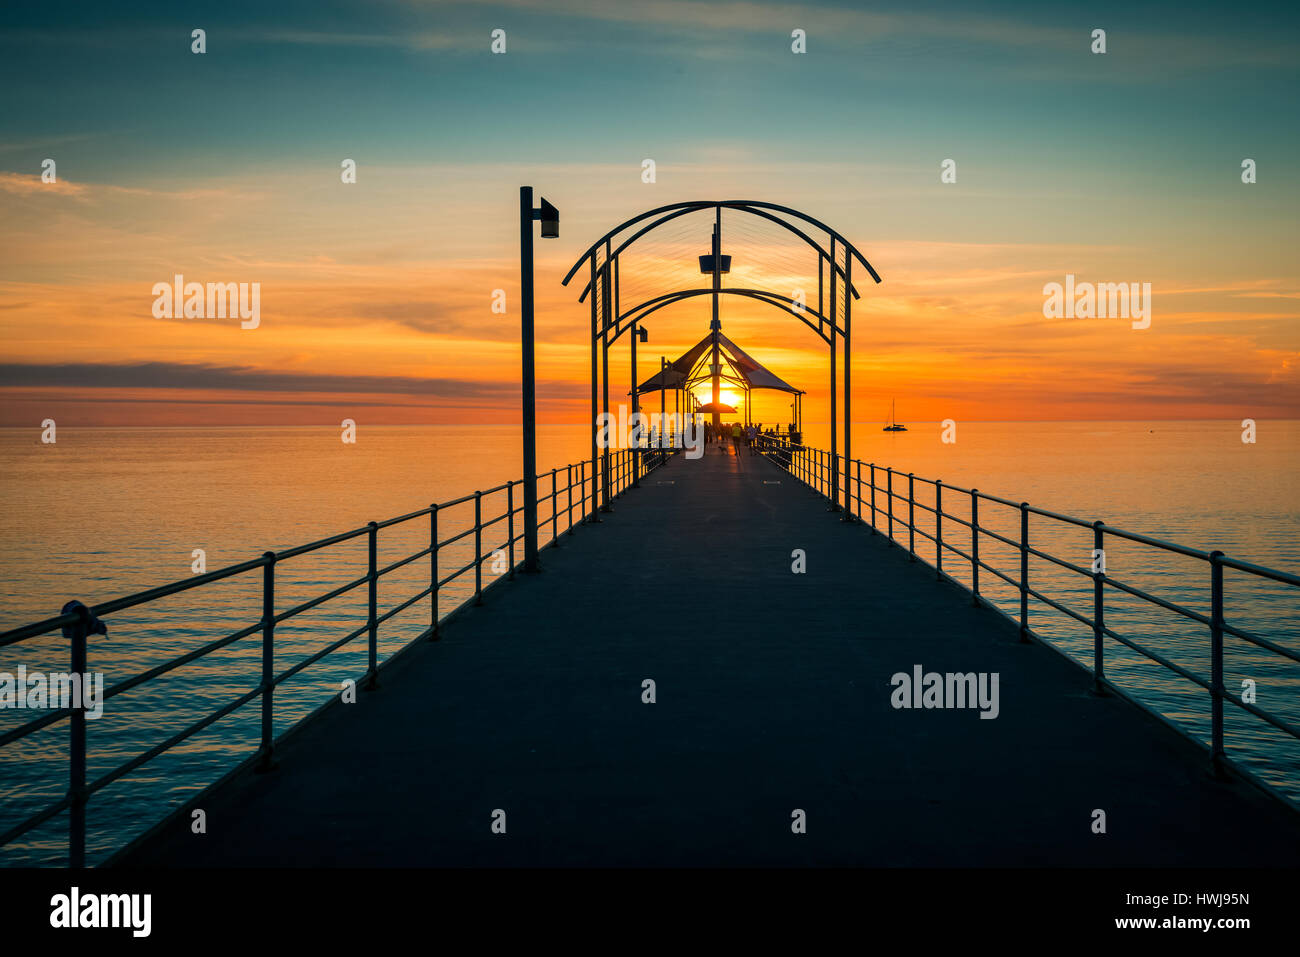 Adelaide, Australia - October 2, 2015: People walking along Brighton Jetty at sunset - Stock Image